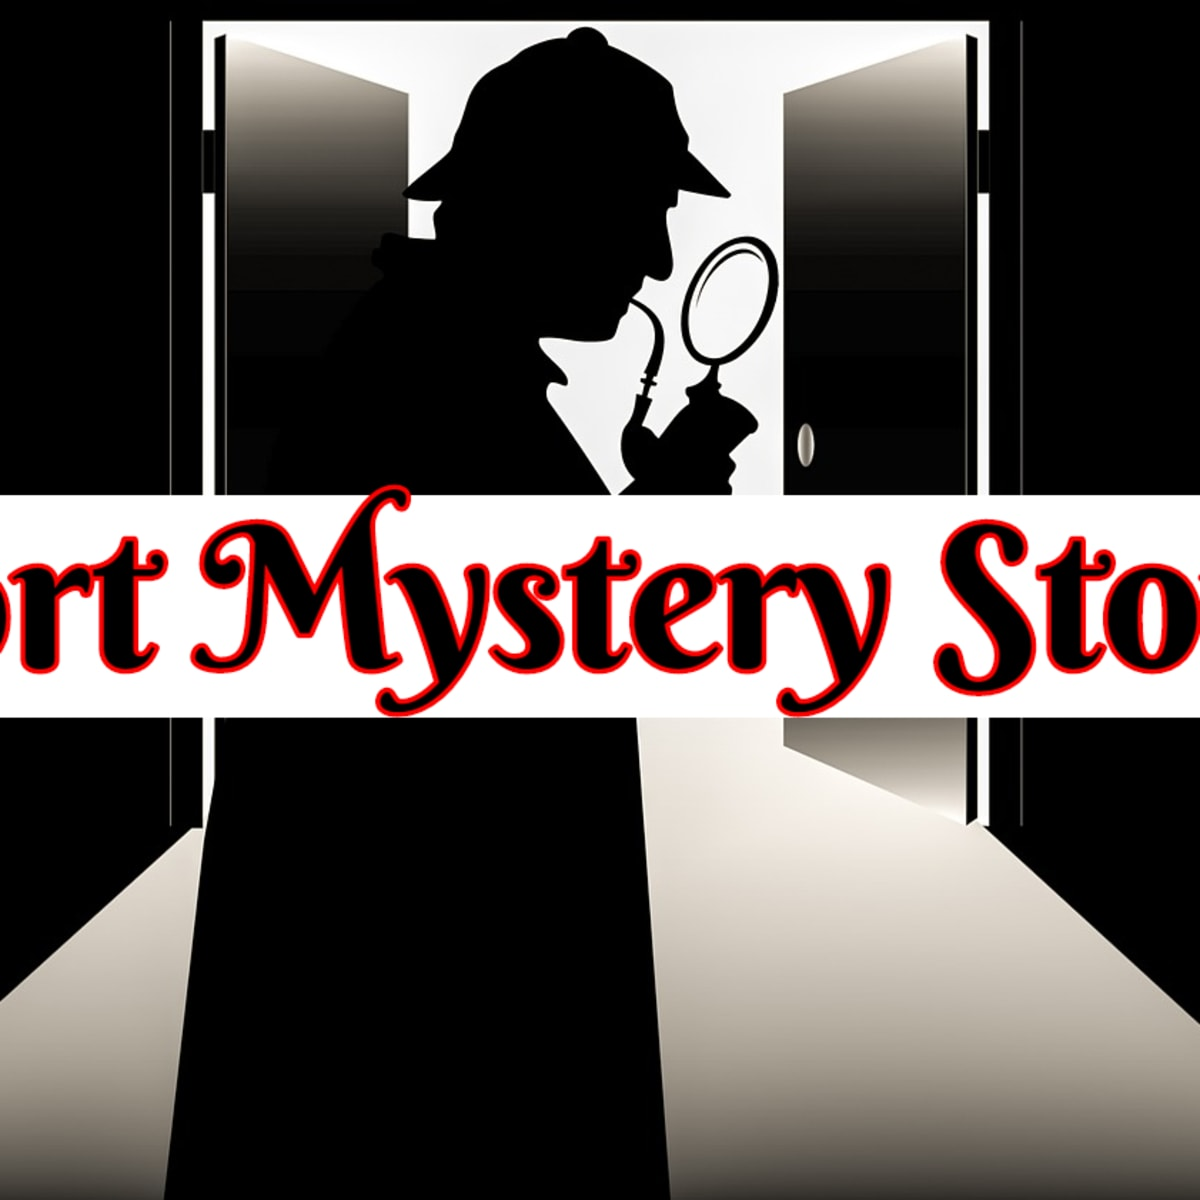 Mystery Short Stories Thriller Detective Suspense And Psychological Fiction Online Owlcation Education